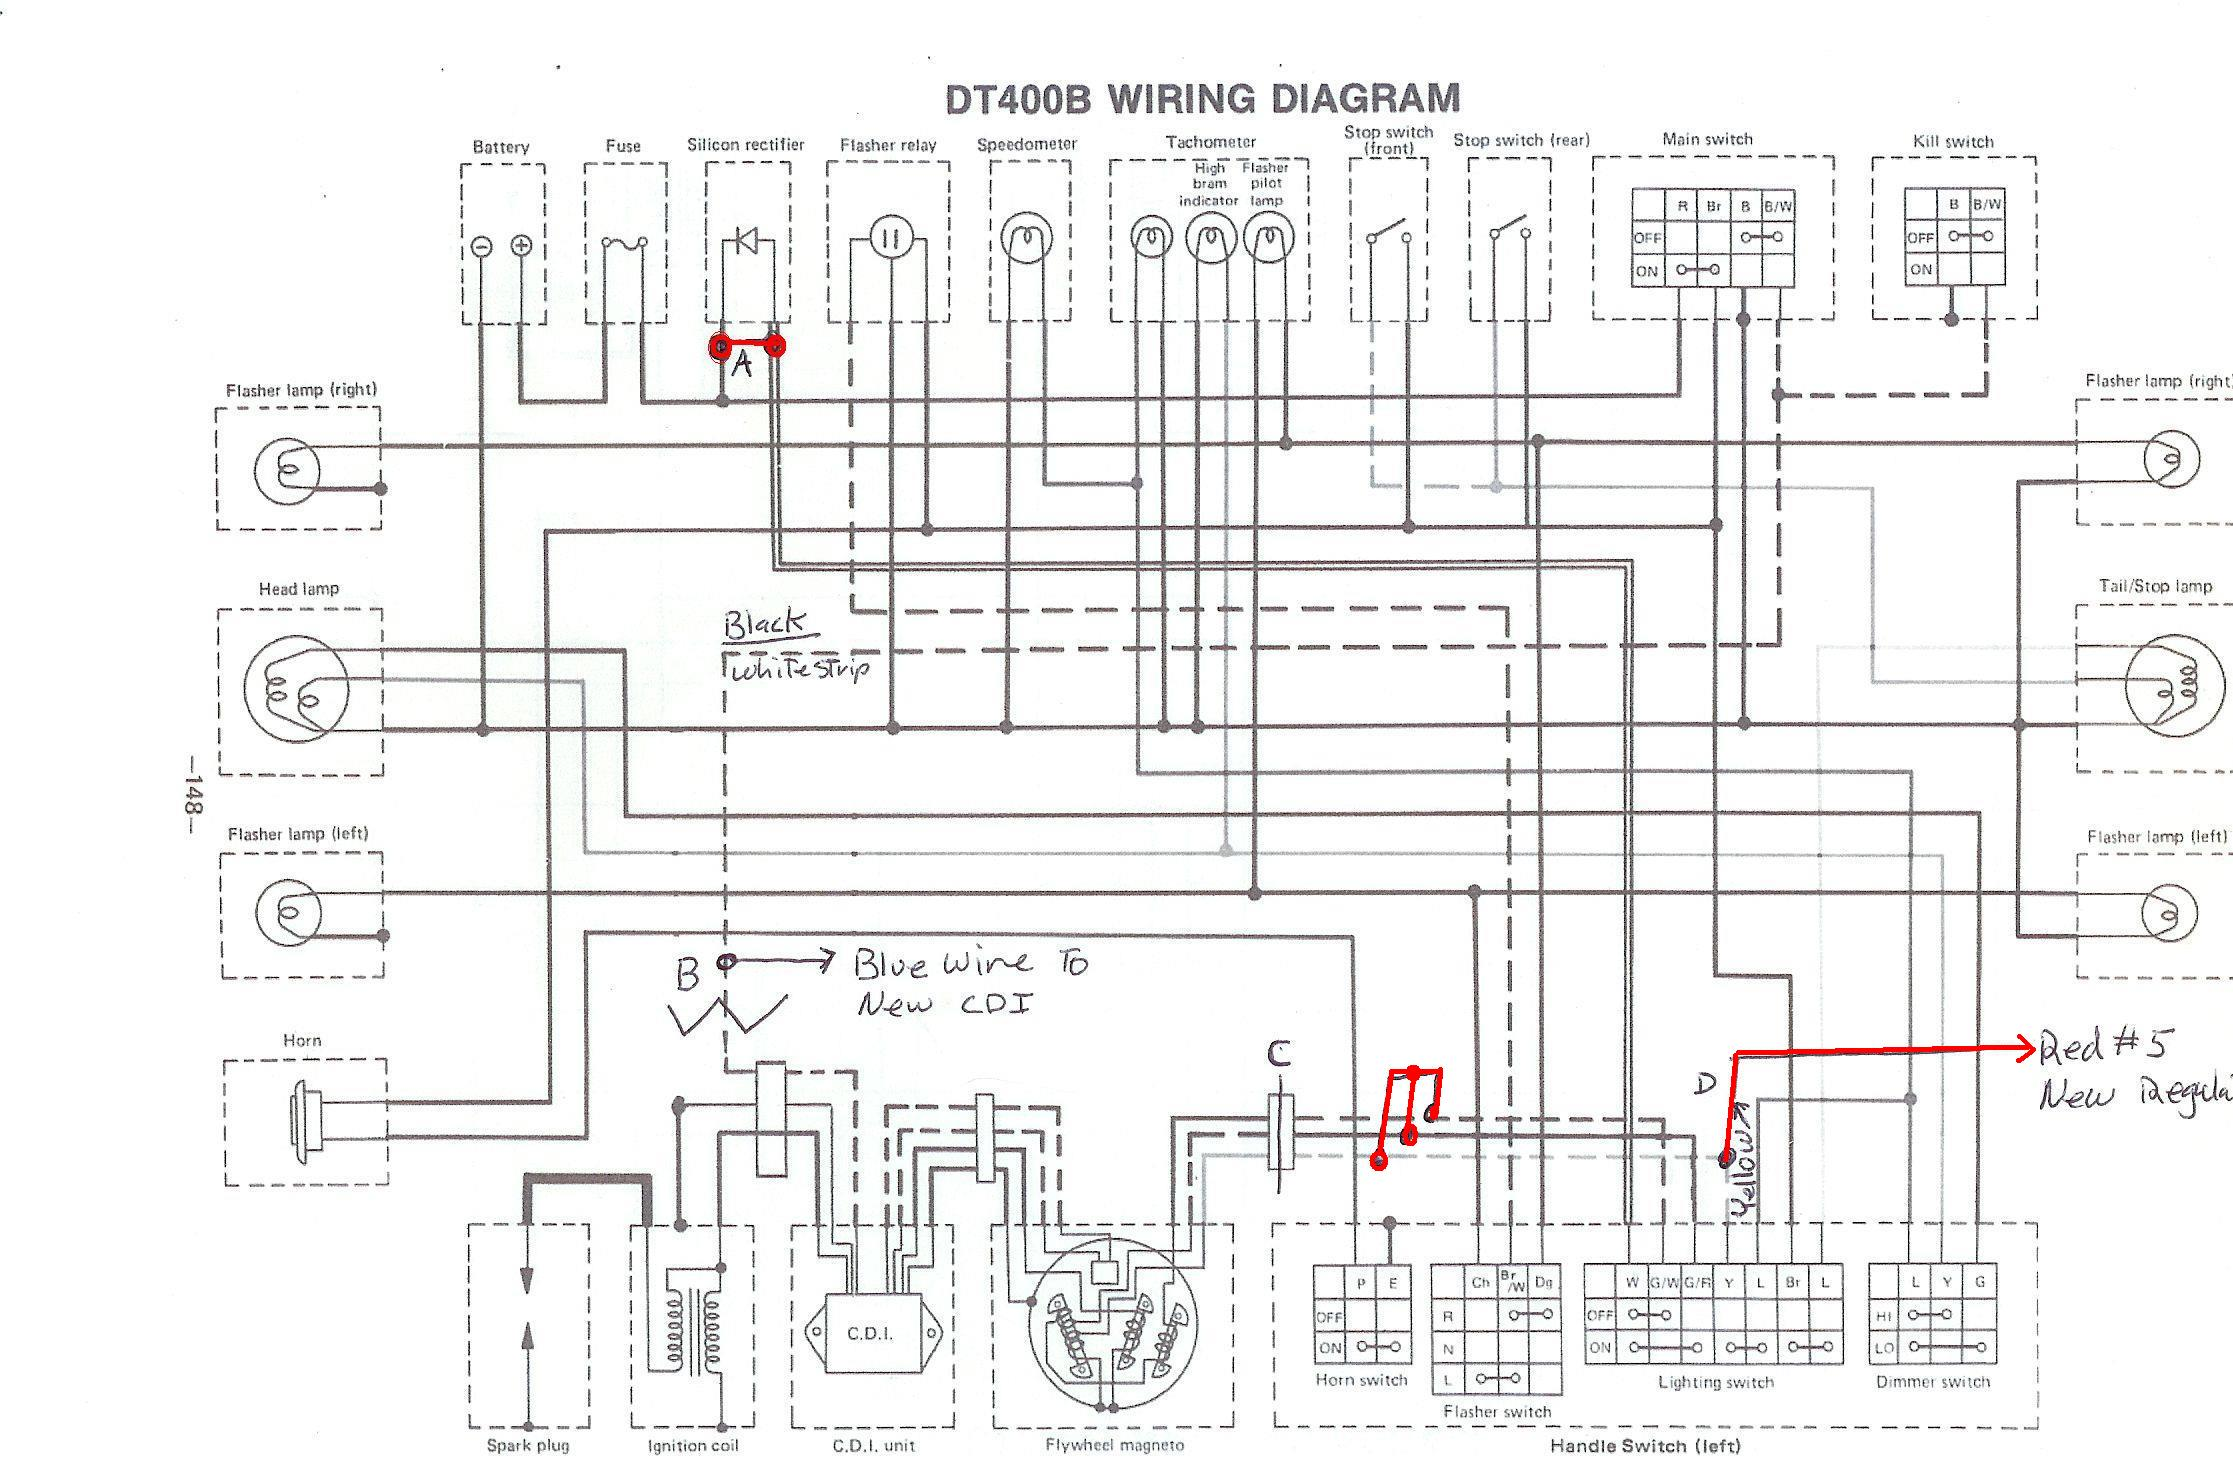 yamaha 50cc wiring diagram wire center u2022 rh 144 202 61 13 Yamaha Outboard Wiring Diagram wiring diagram for yamaha zuma